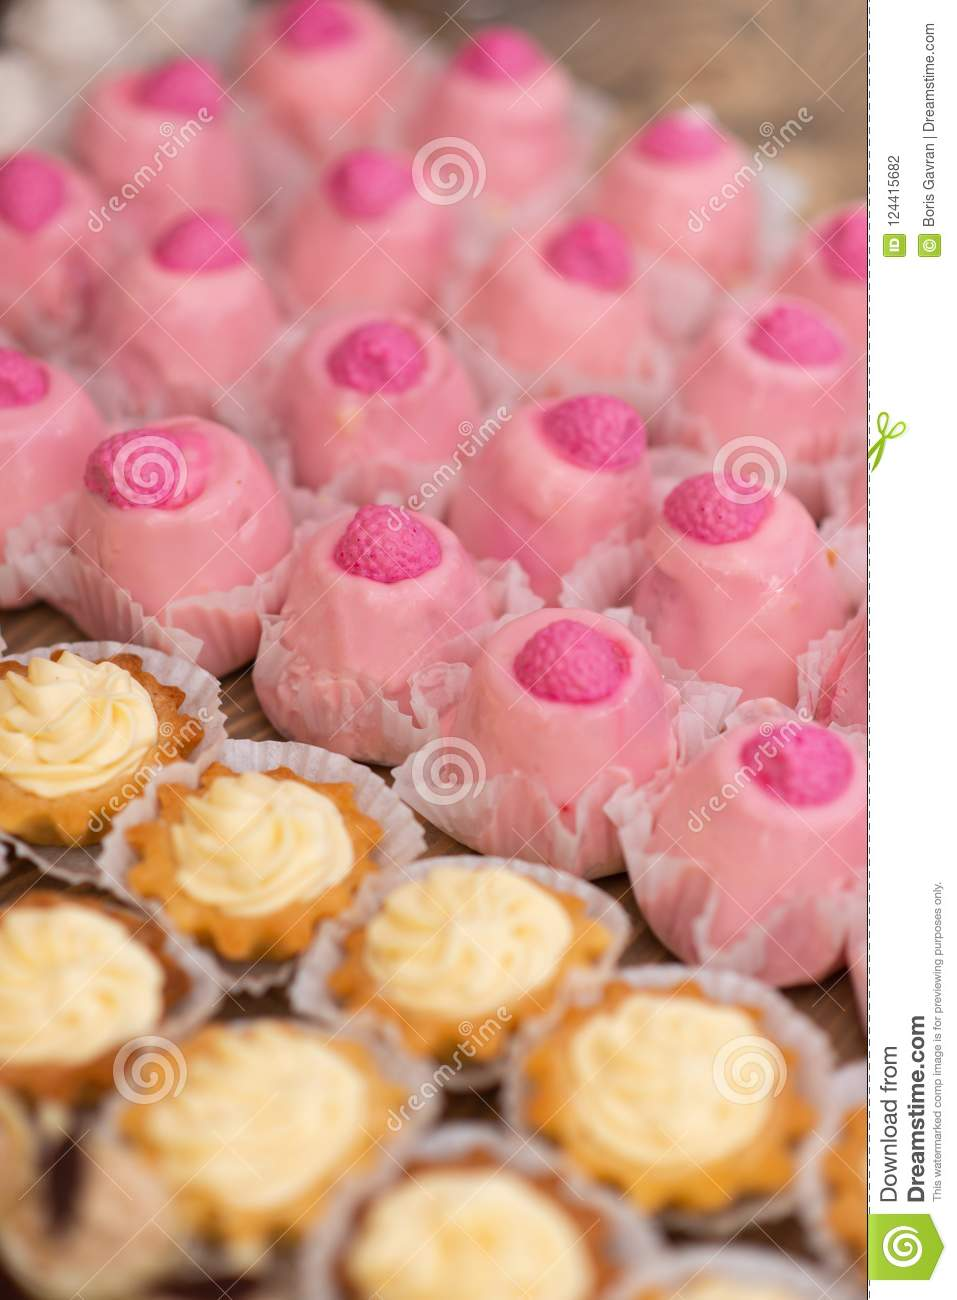 Pink And Yellow Cupcakes On Banquet Table. Stock Photo - Image of ...